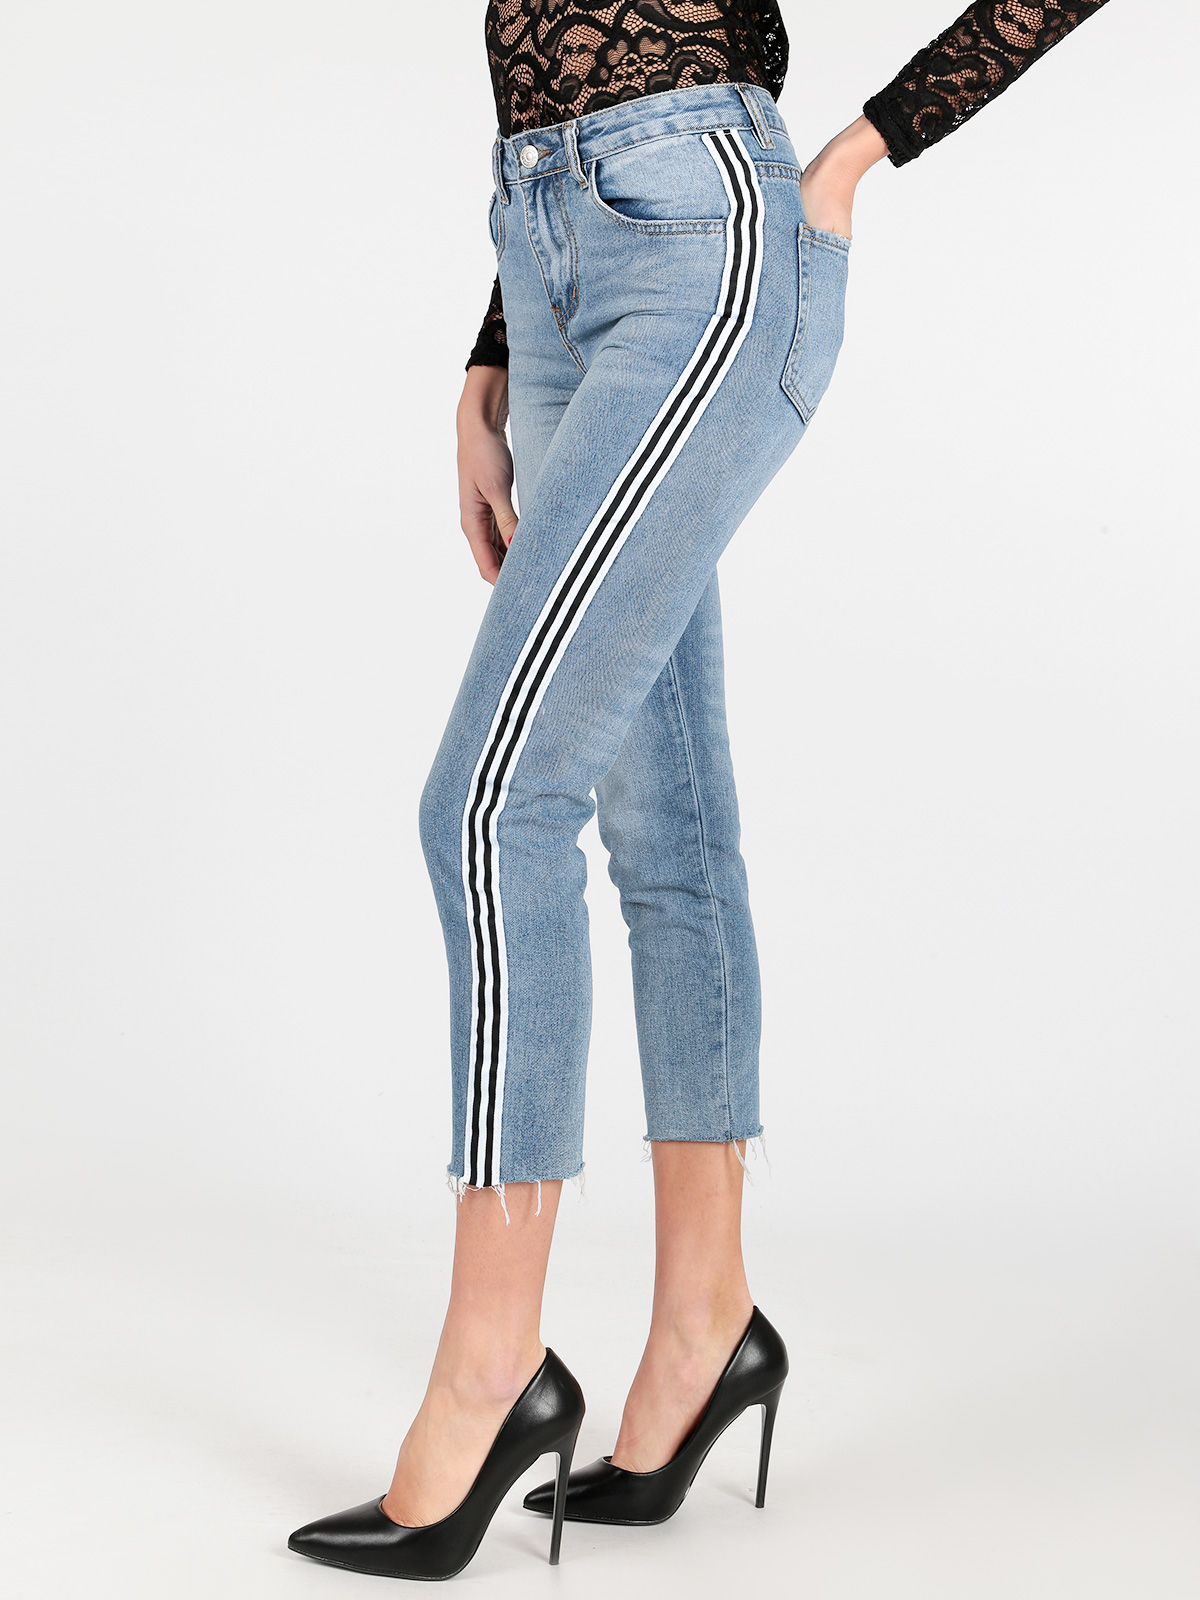 SOLADA Black White Stripe Three Quarter Pencil Pants Jeans Woman Skinny Elastic Slim Mathcing Turnup Distress